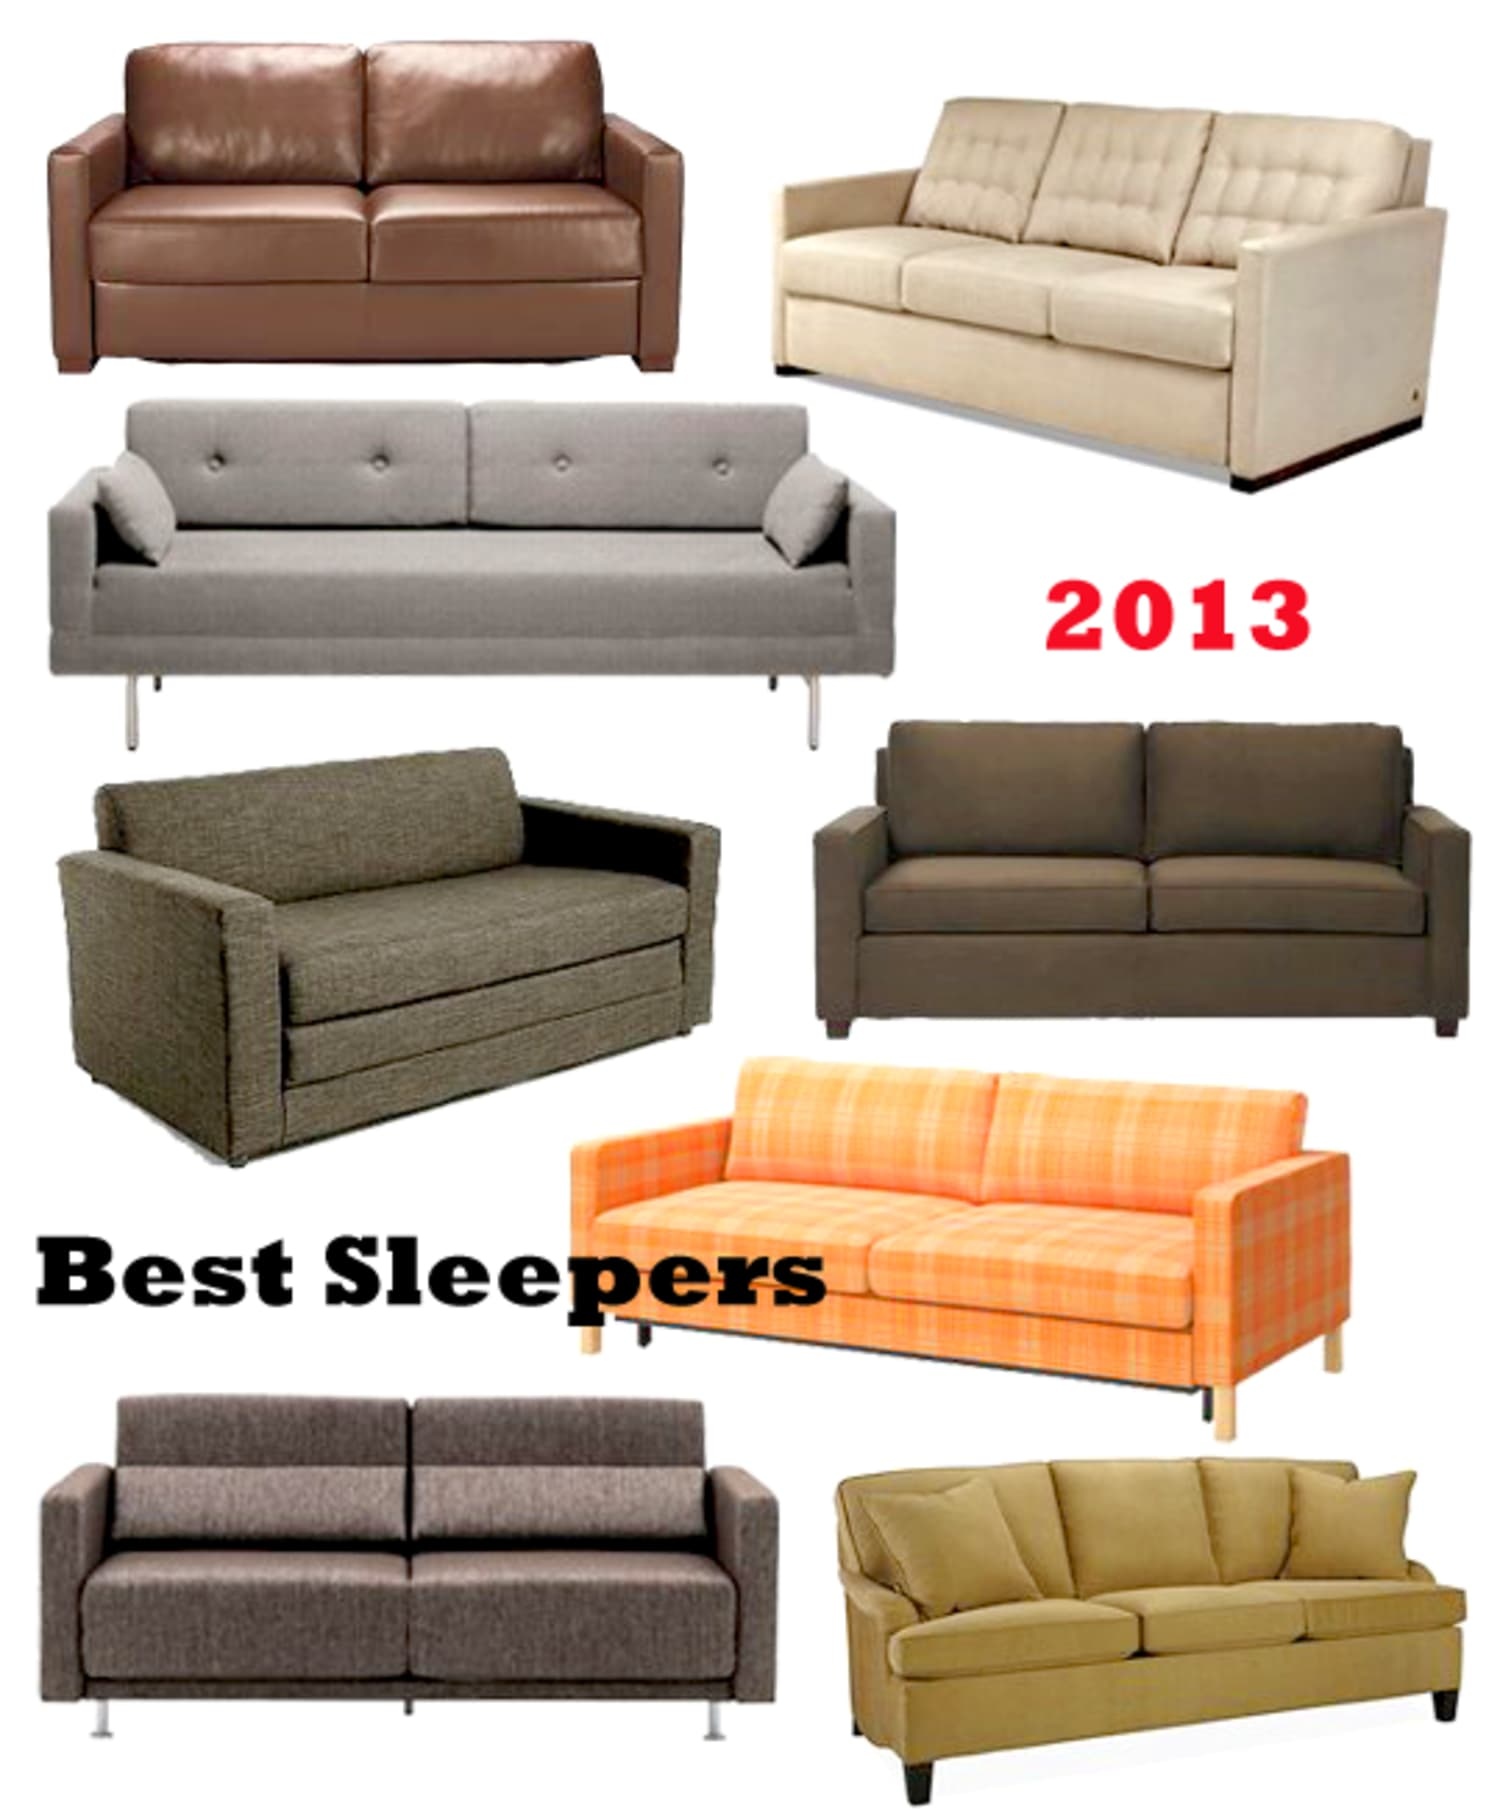 16 Best Sleeper Sofas & Sofa Beds 2013   Apartment Therapy